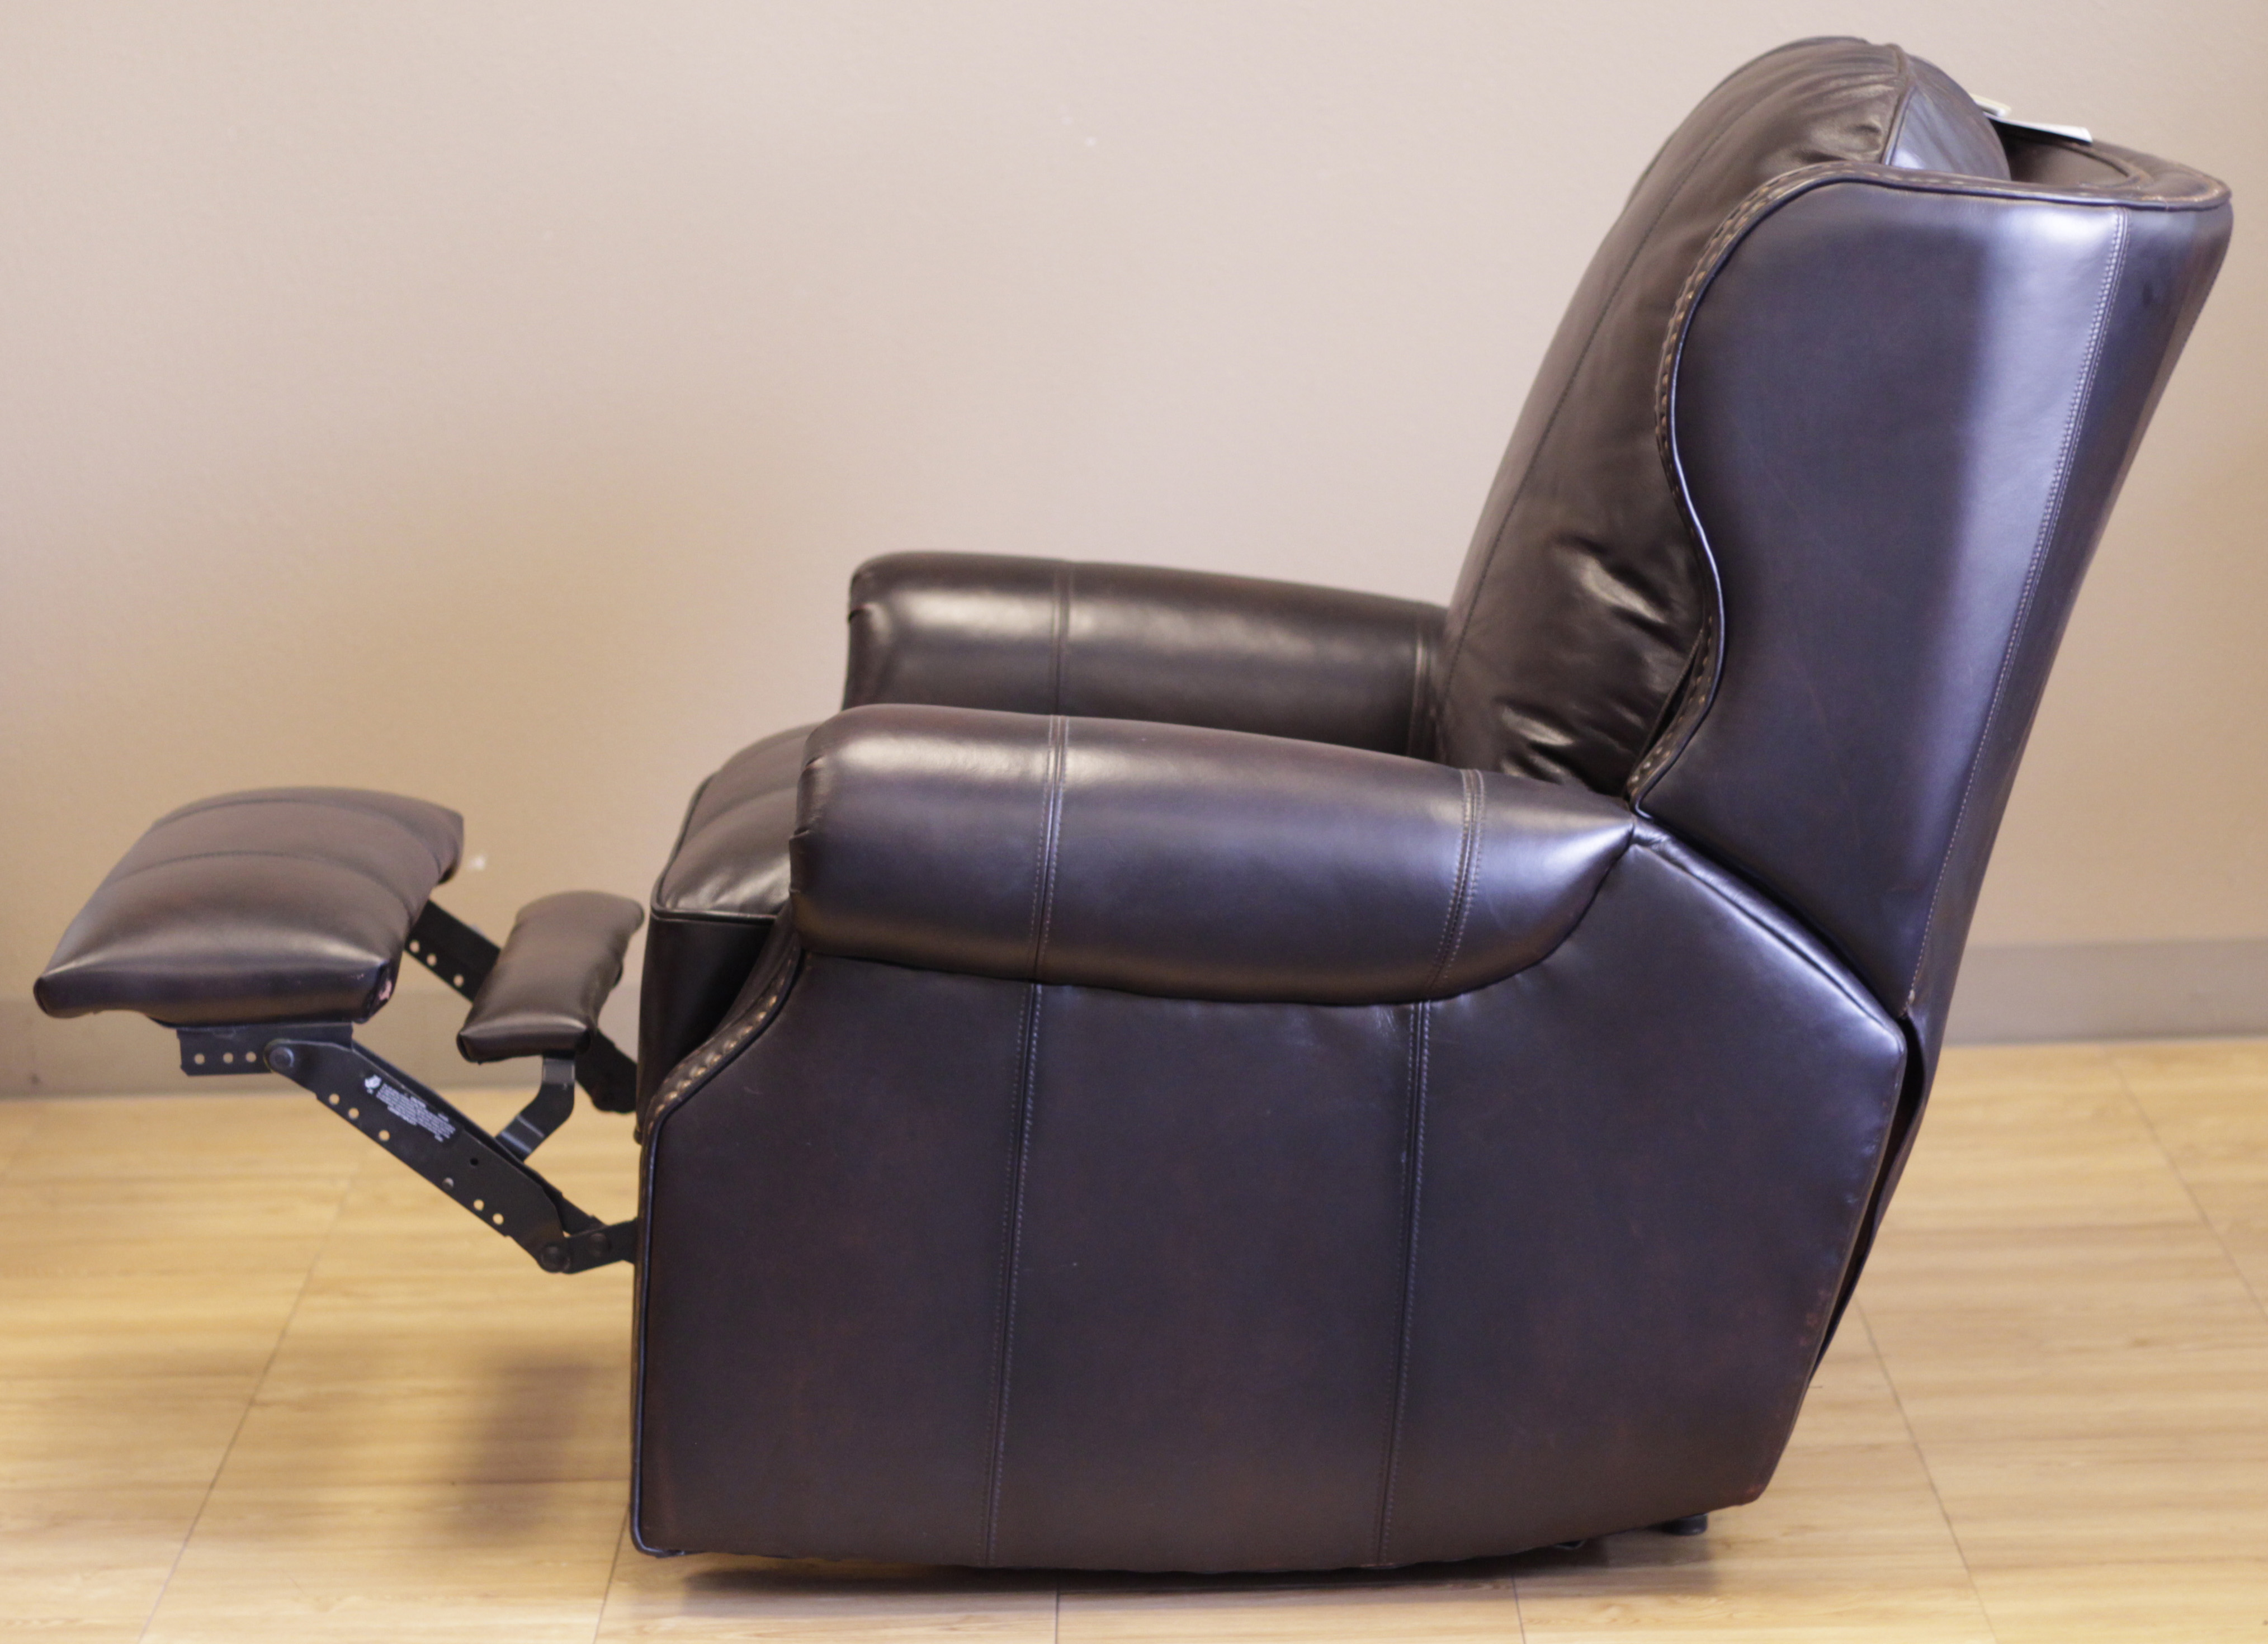 Barcalounger Bristol II Wall Hugger Recliner Chair - Leather ...